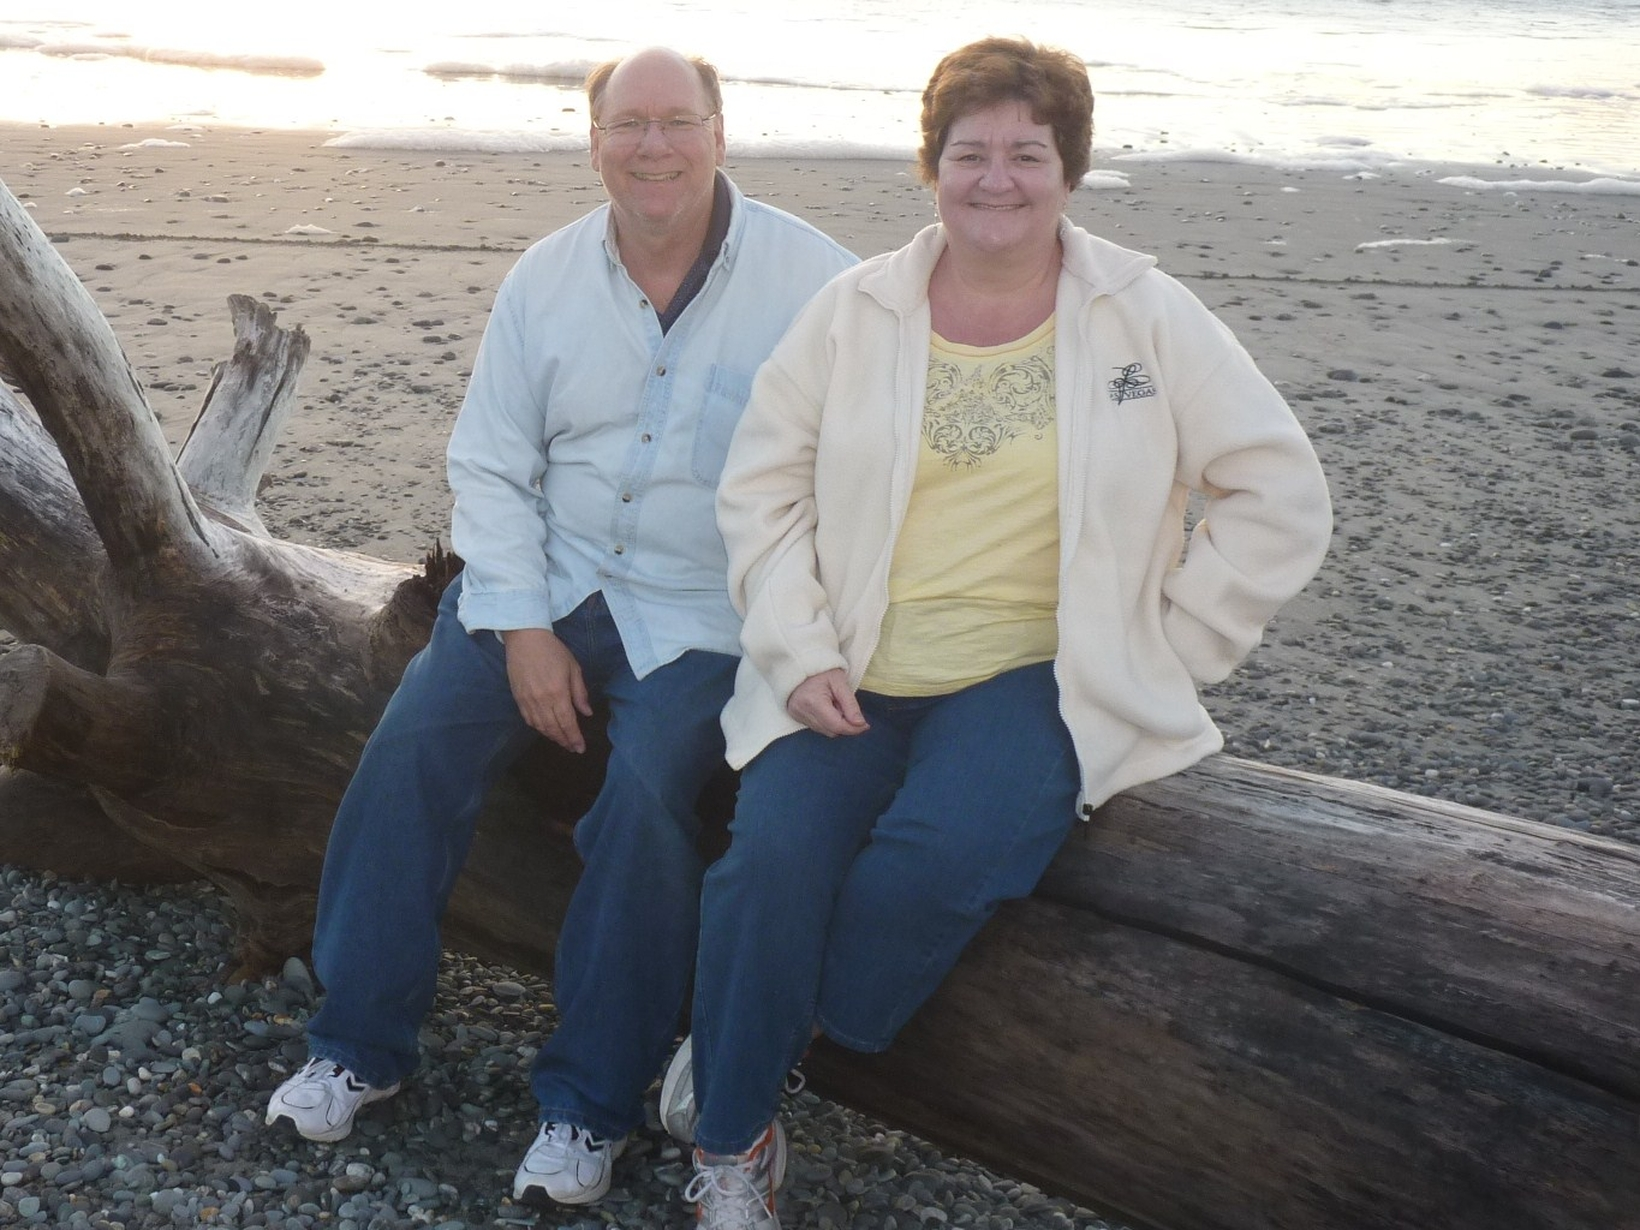 Van & Colleen from Grapevine, Texas, United States